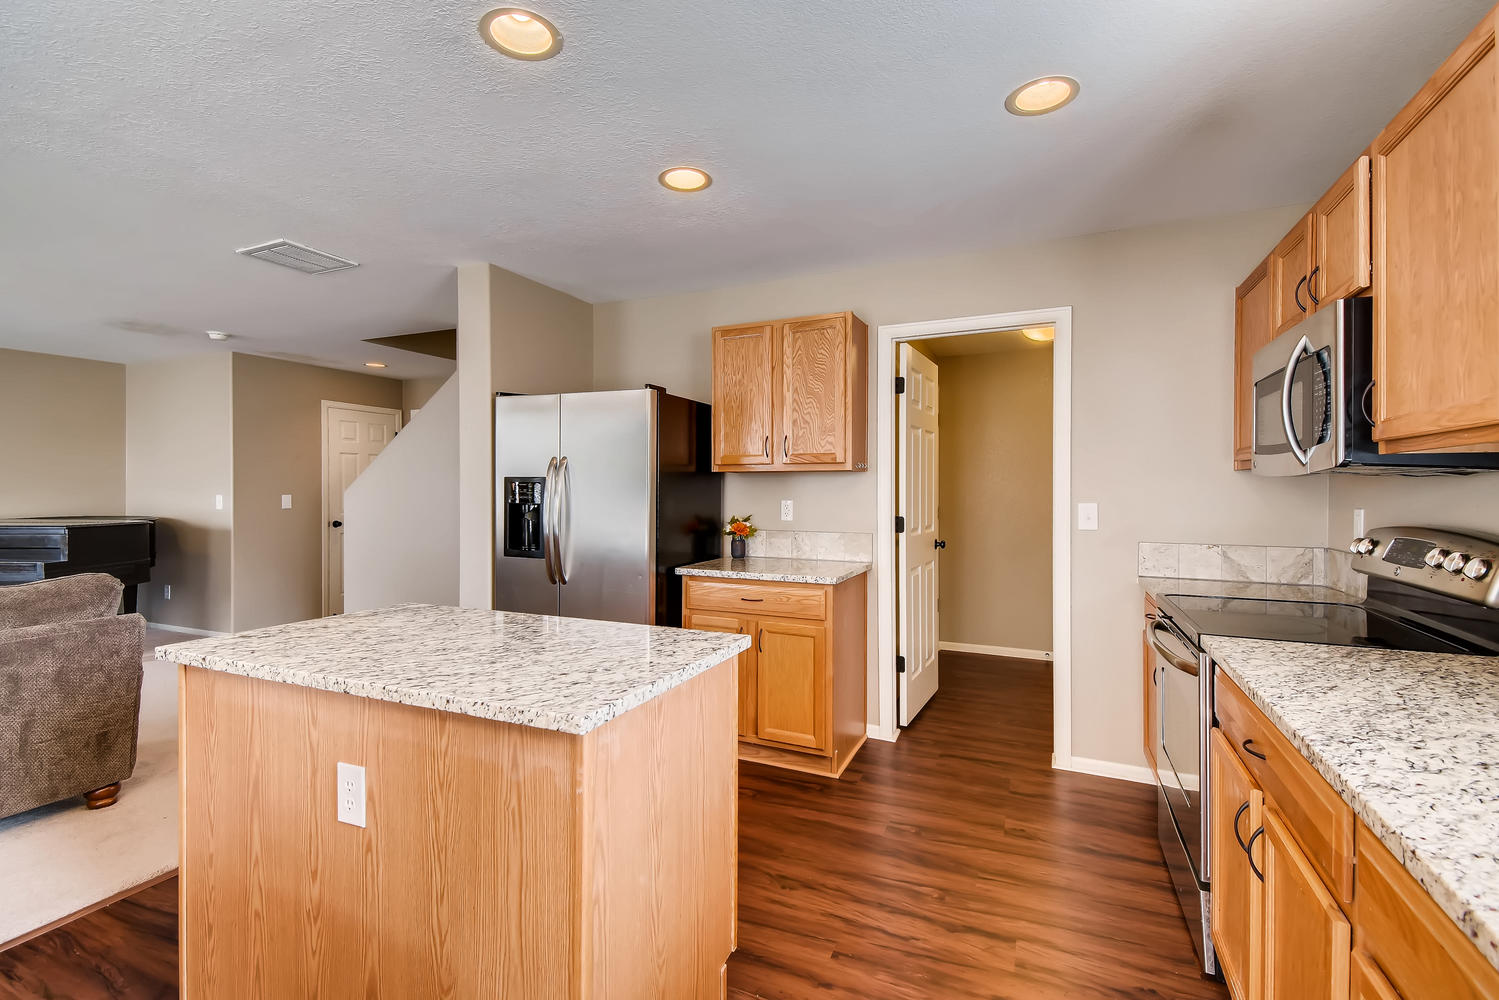 REAL ESTATE LISTING: 10595 Forester Pl Longmont CO Kitchen